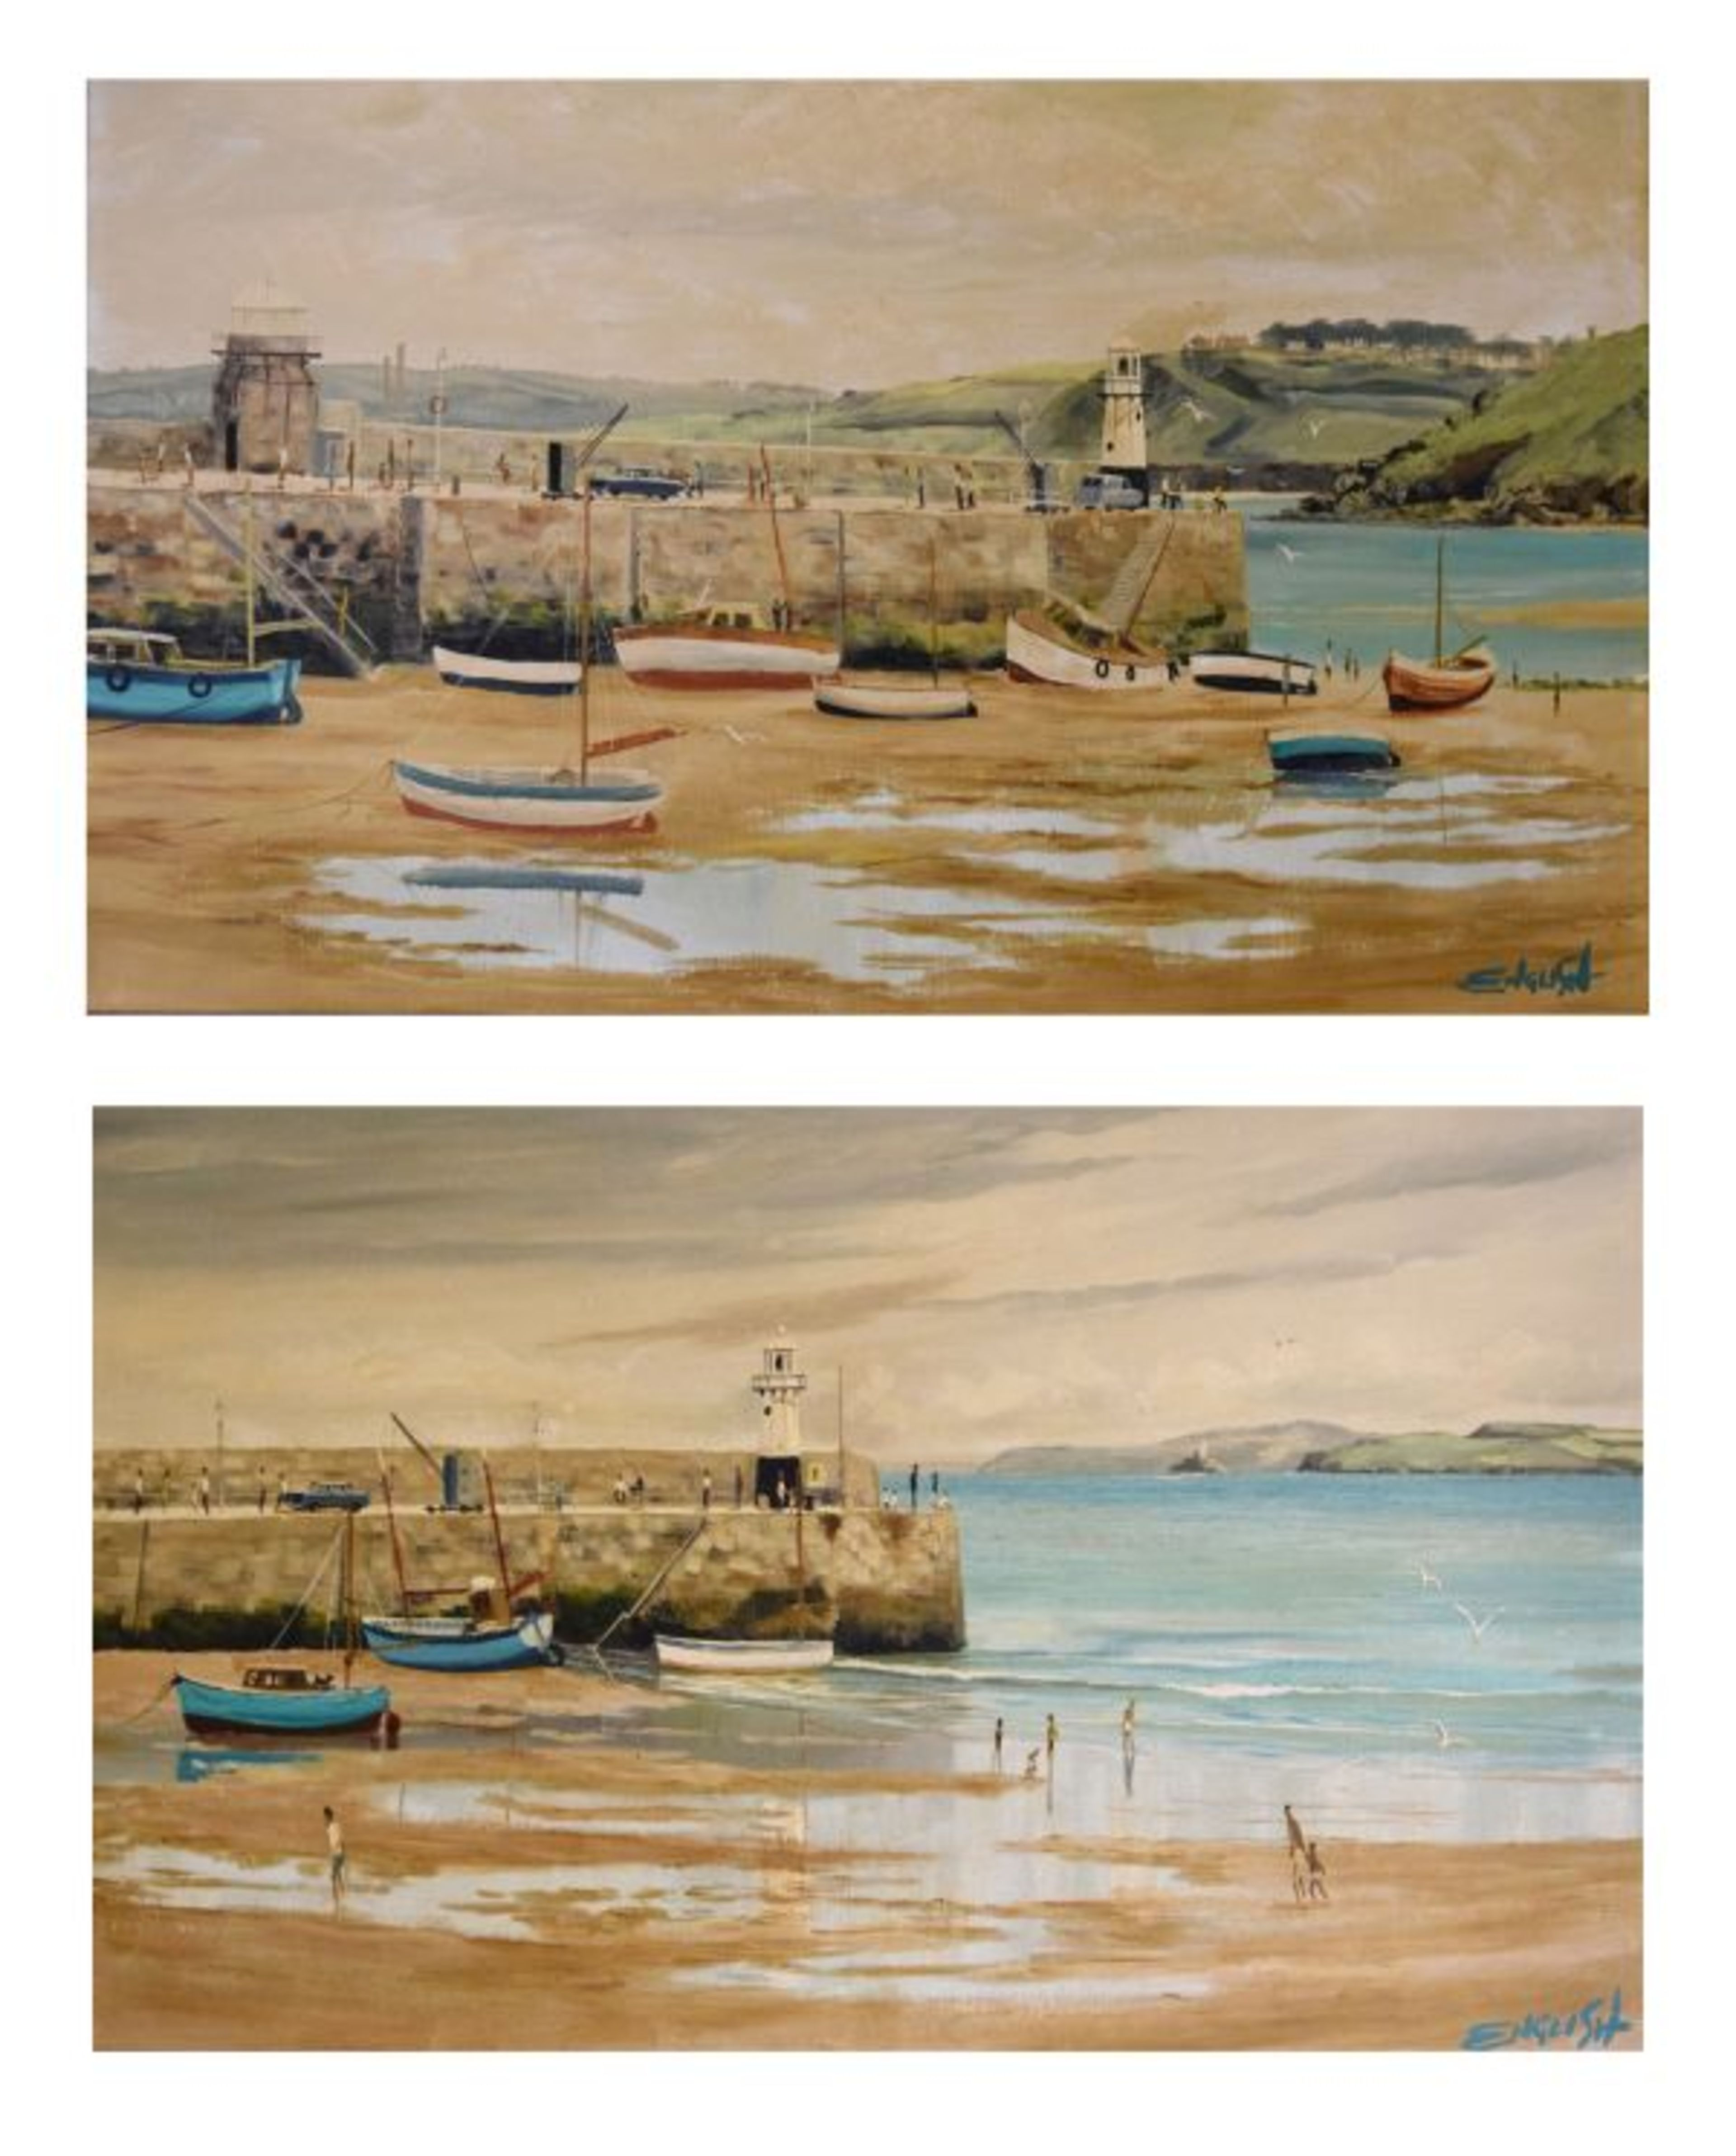 Lot 75 - Keith English (20th Century) - Two coastal scenes of St Ives Harbour, Cornwall, one with figures